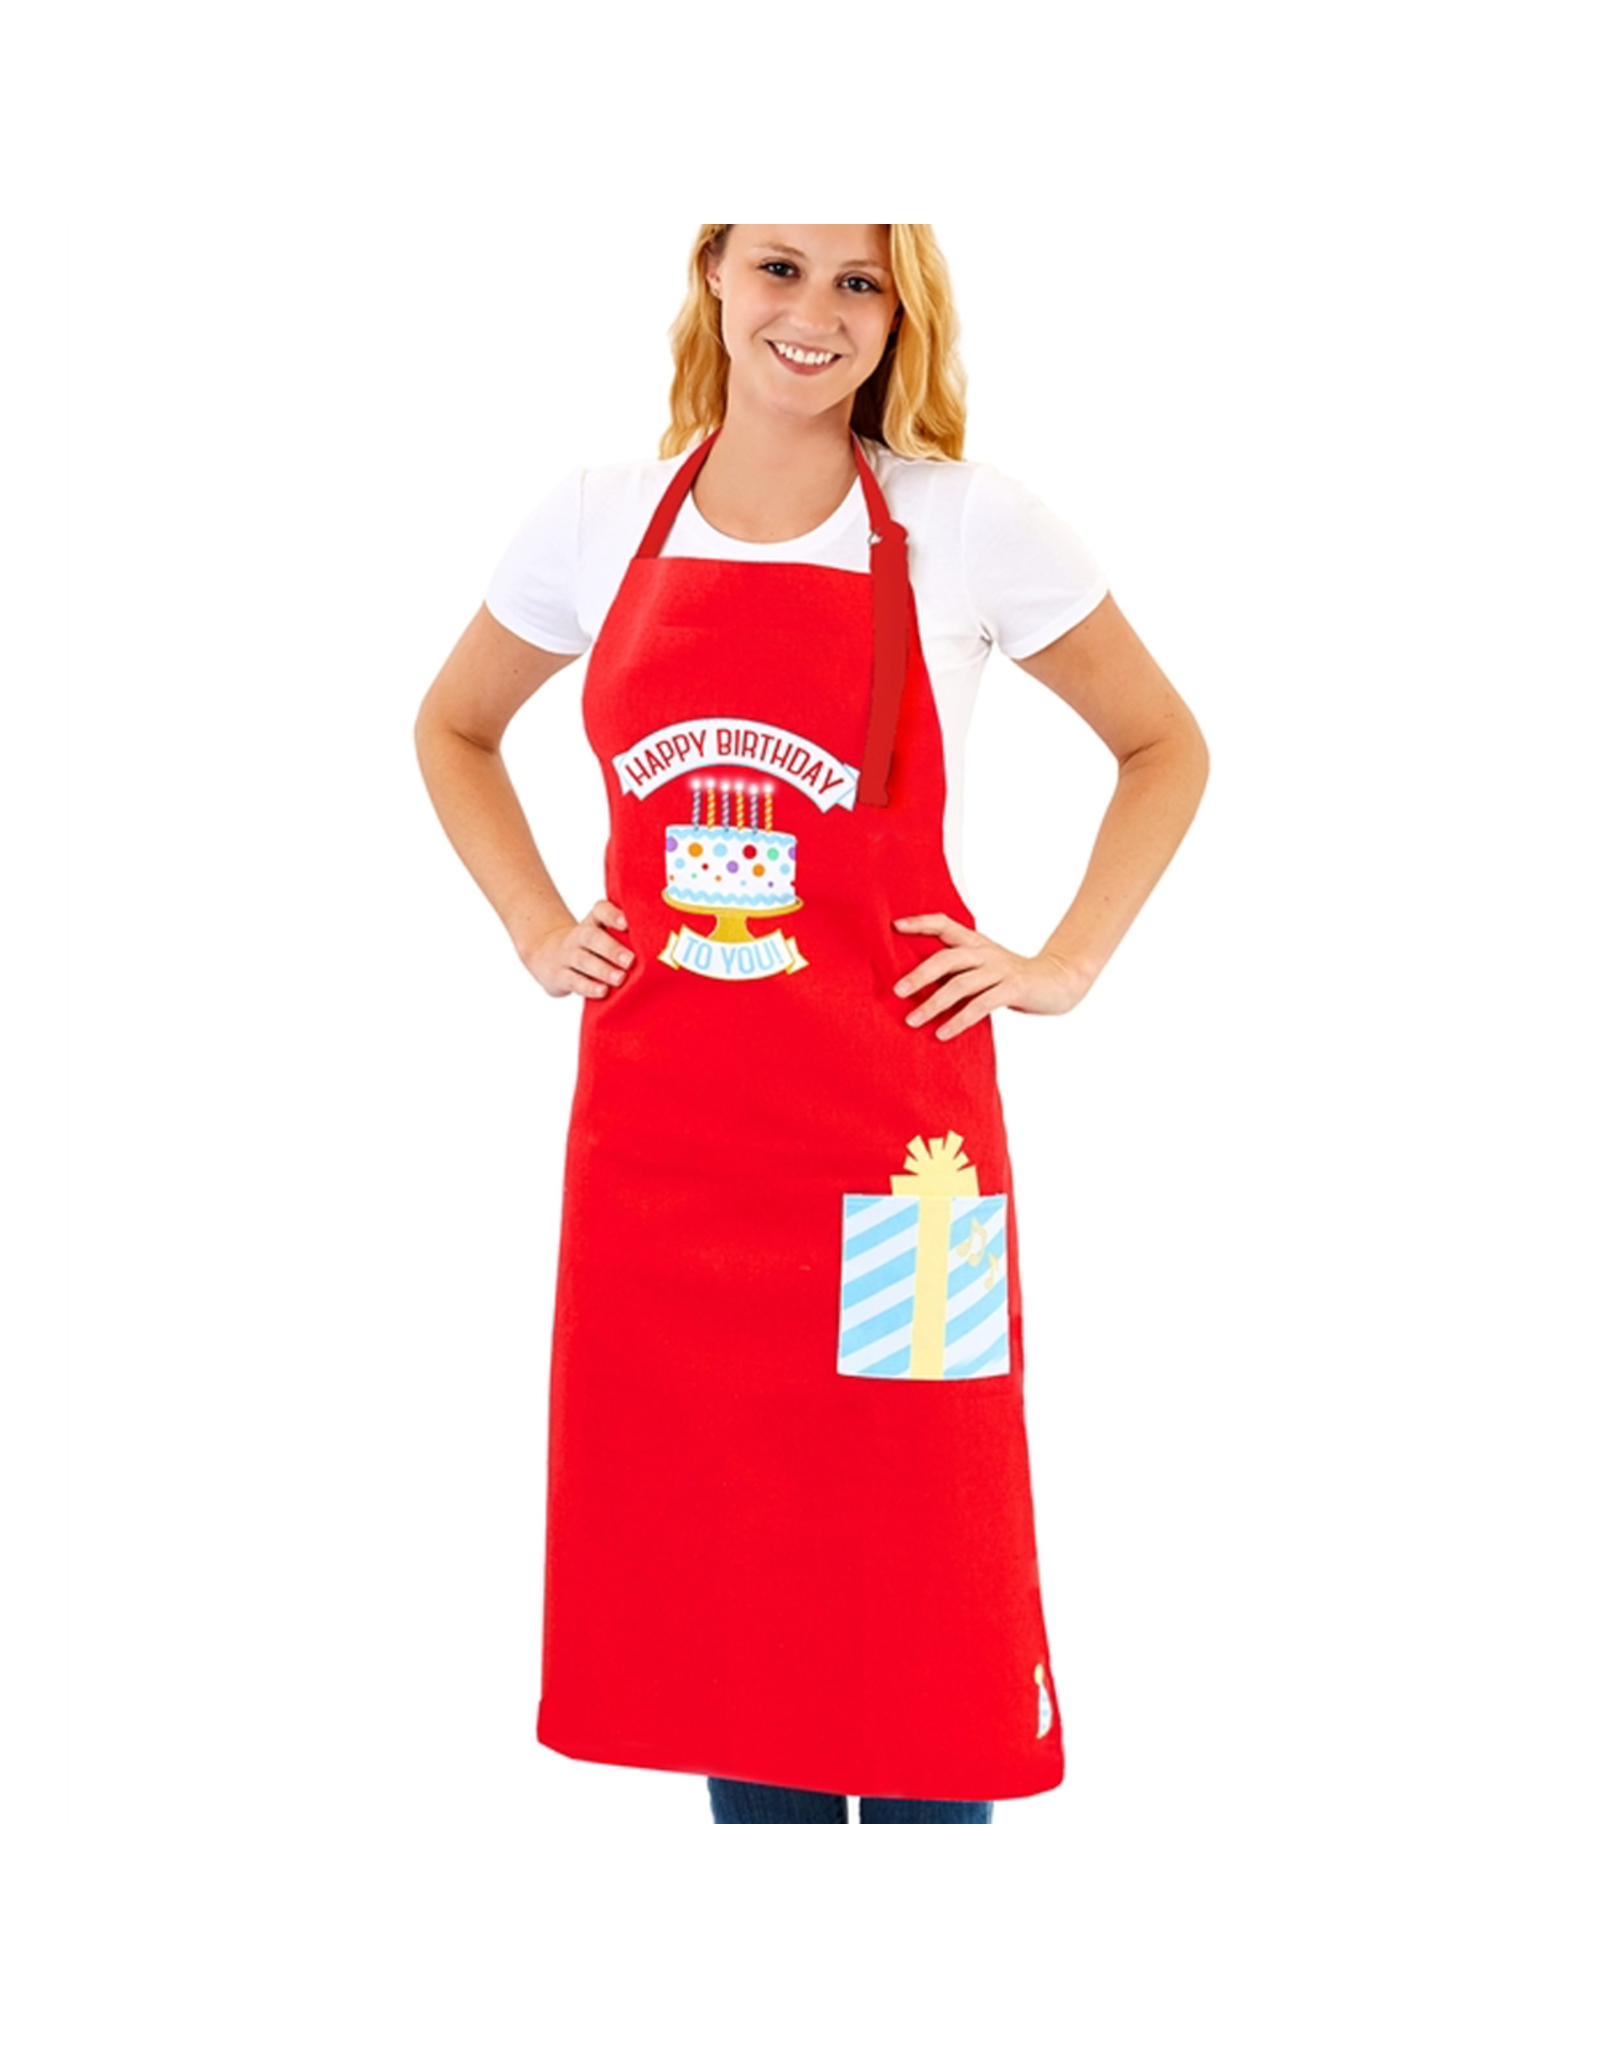 Twos Company Light Up Musical Happy Birthday Apron Cotton 41x36 Digs N Gifts